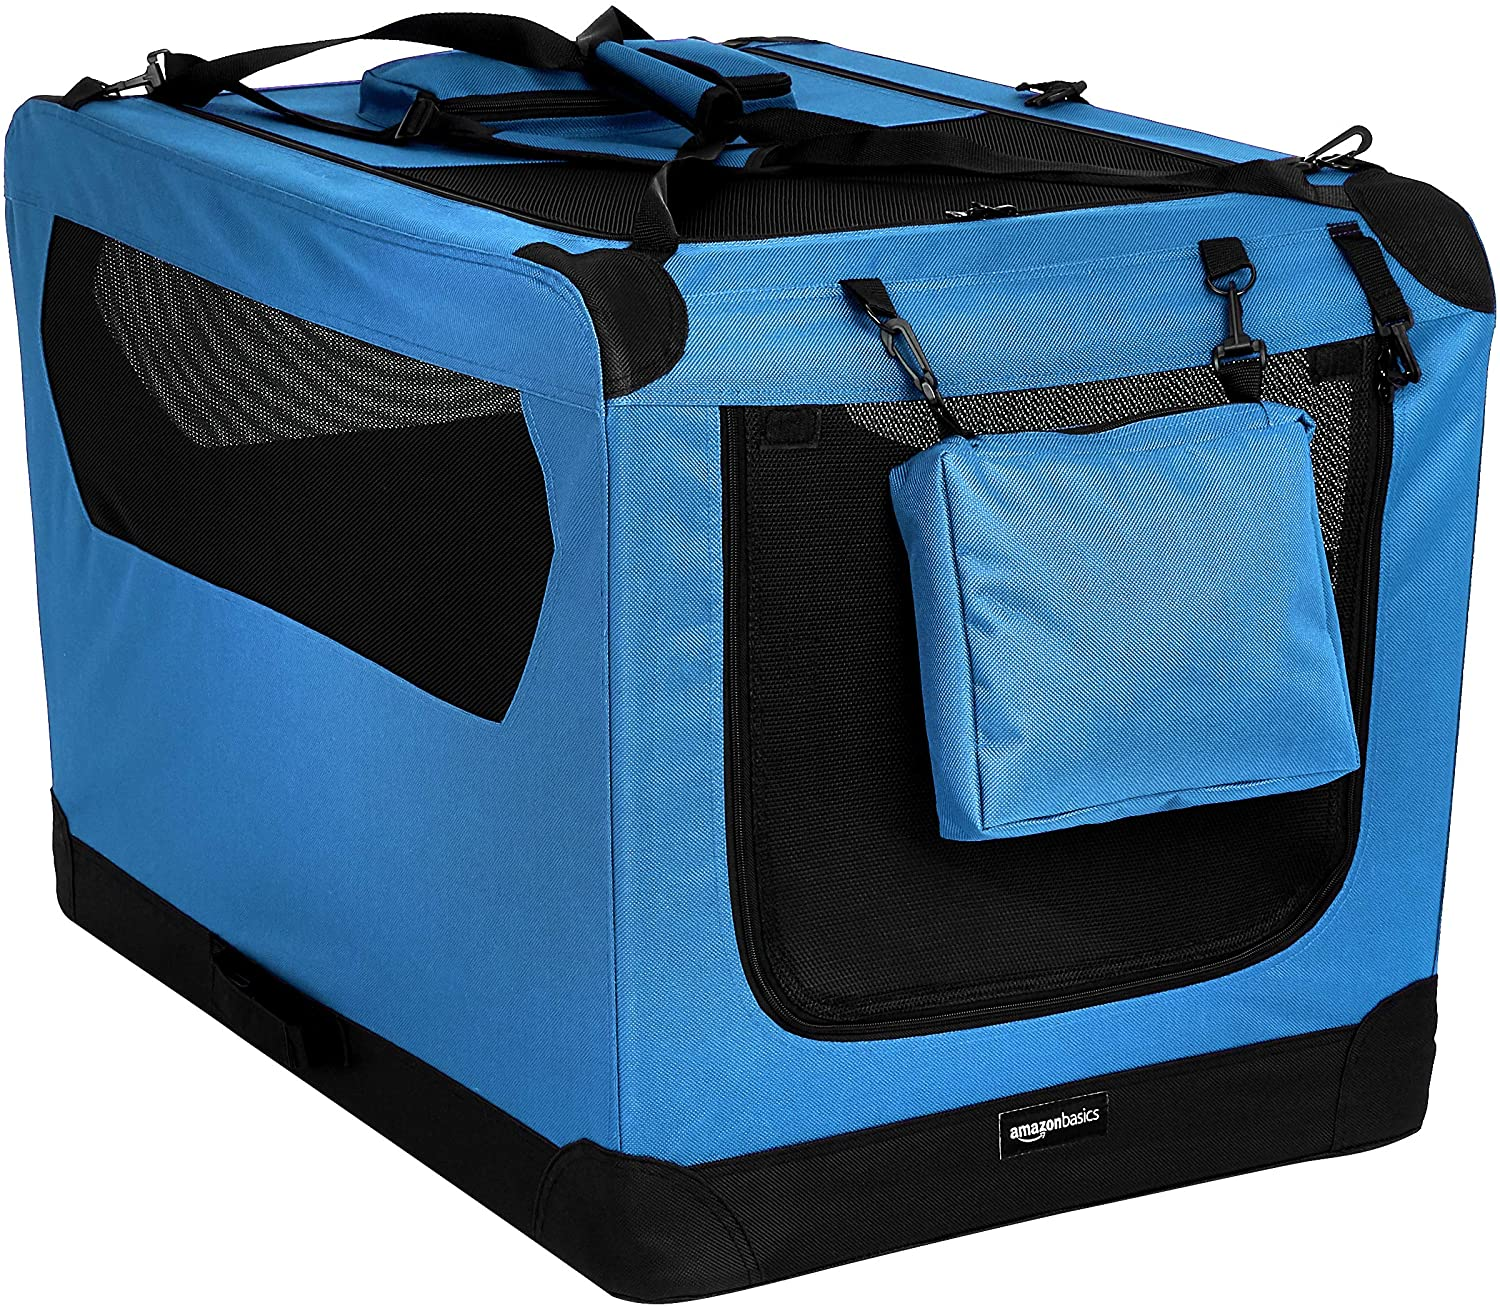 AmazonBasics Premium Folding Portable Crate